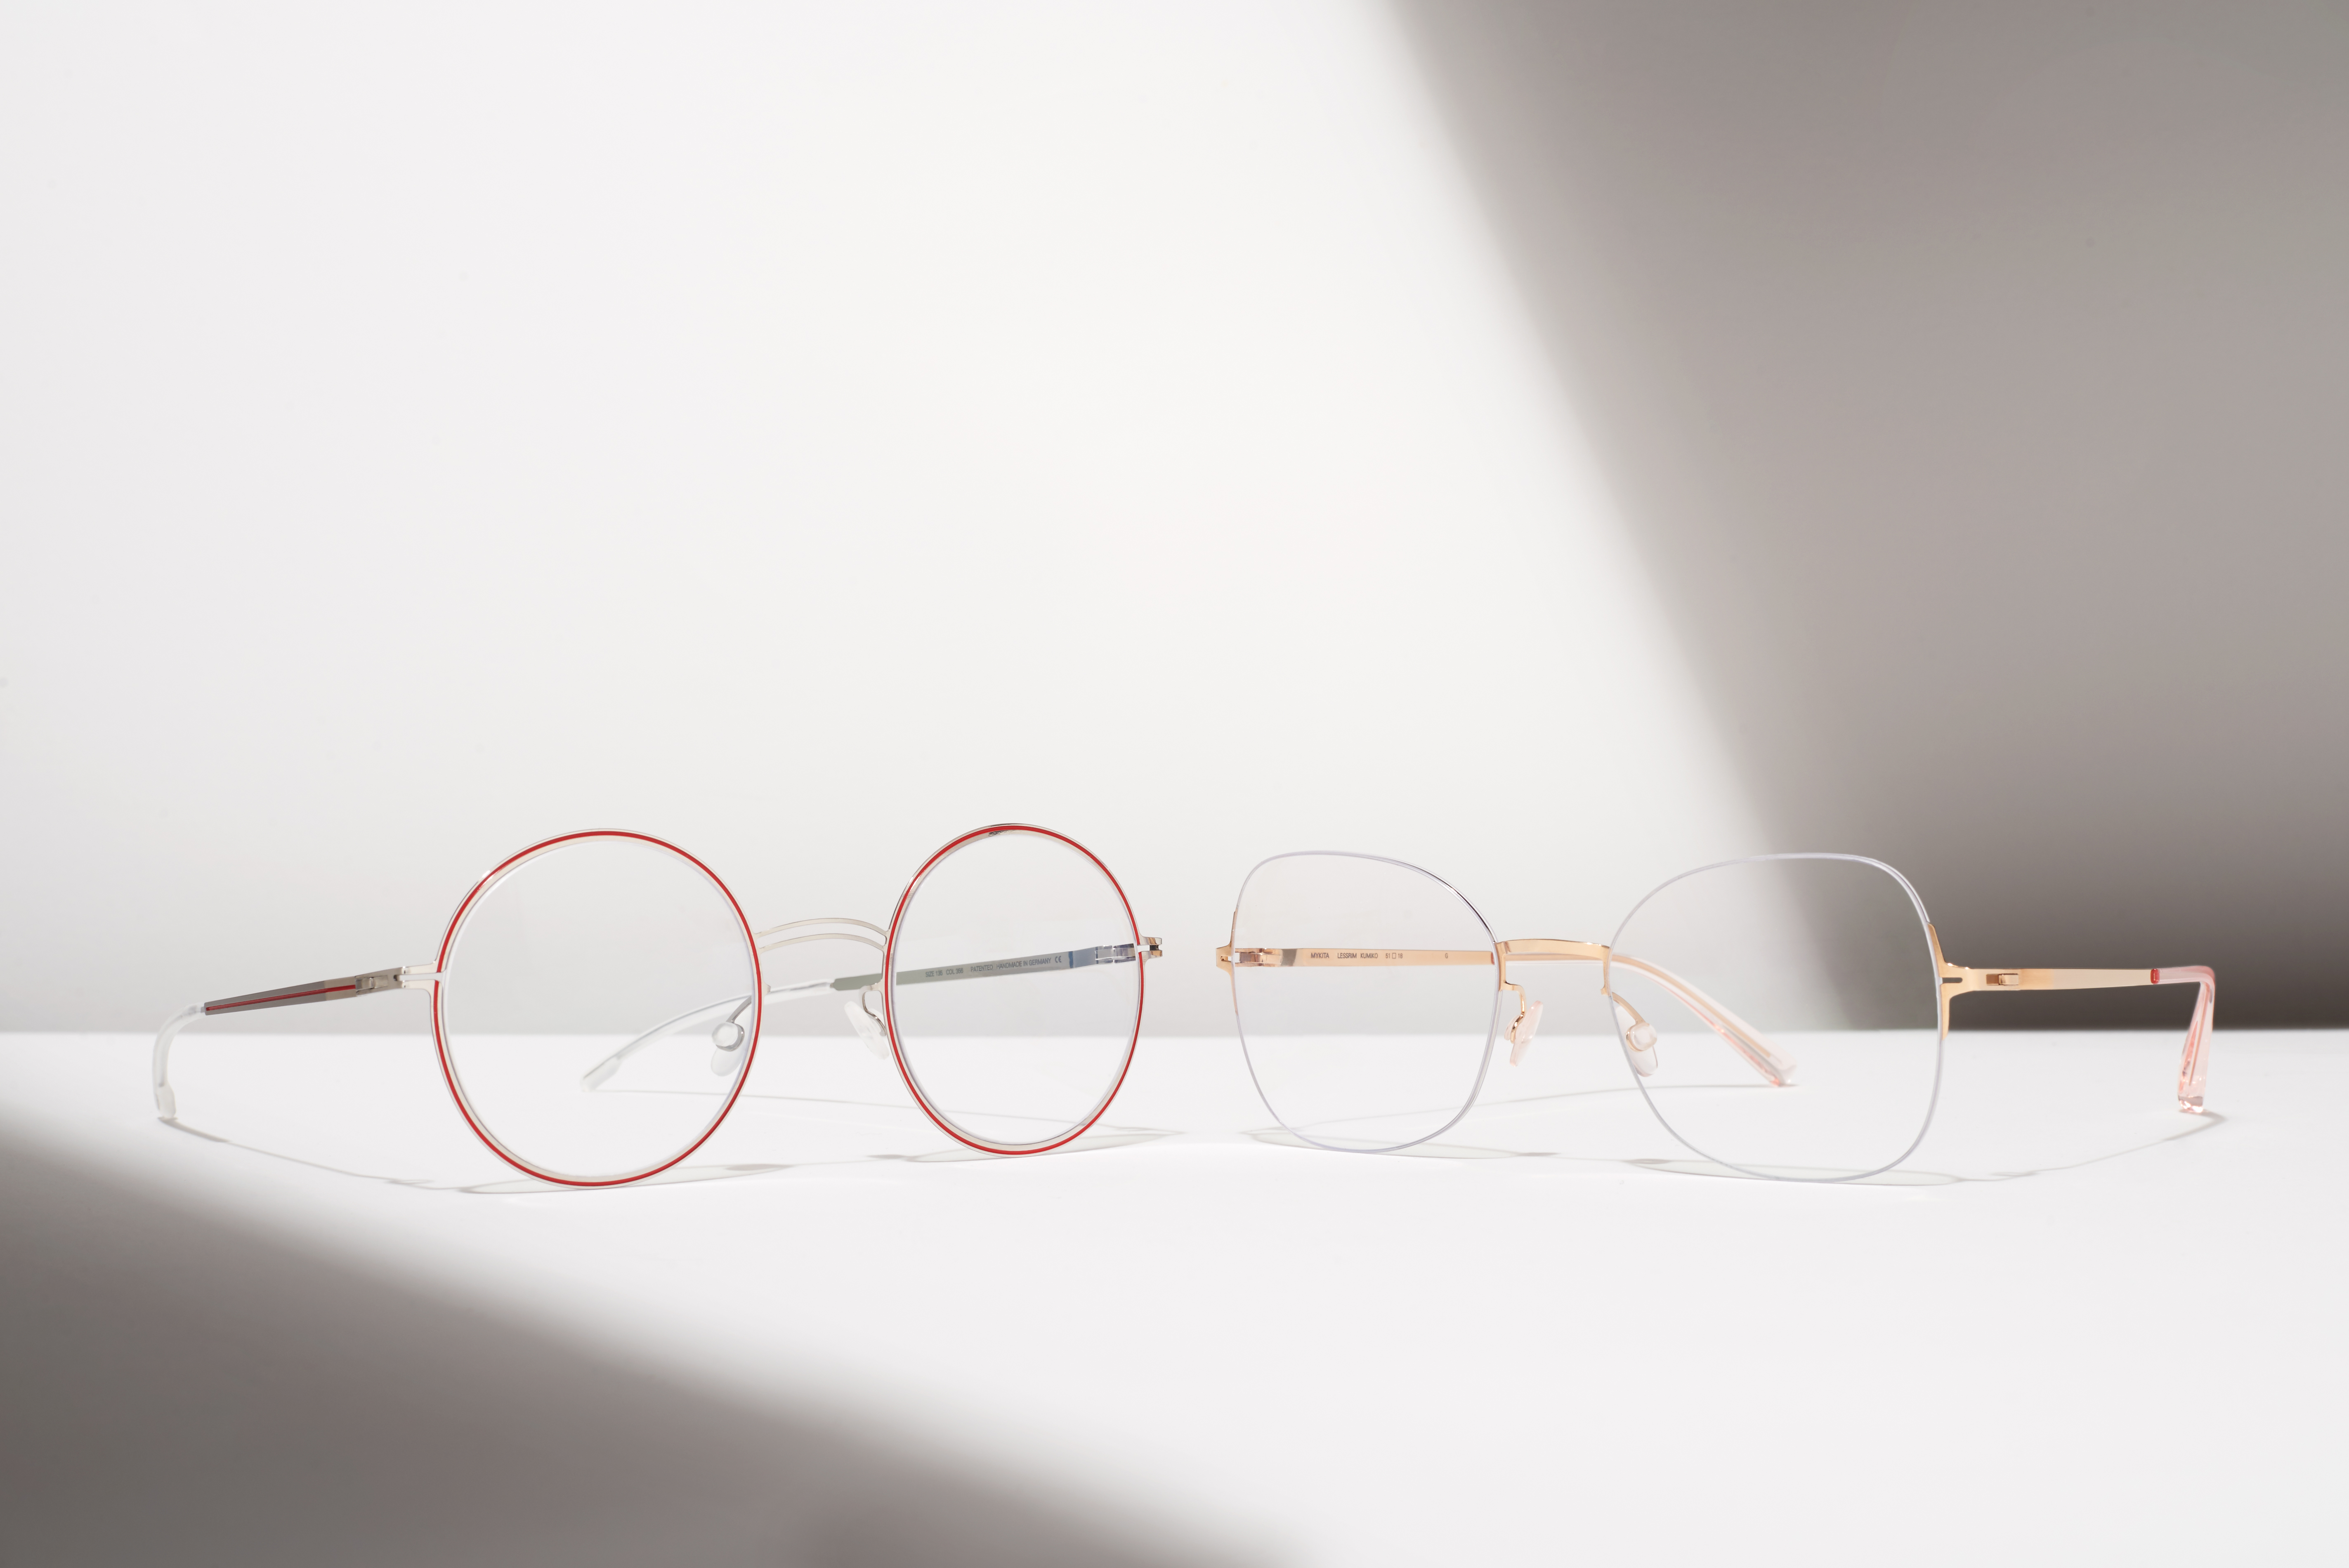 MYKITA New Arrivals Optical Glasses Studio6 Kumiko Desktop